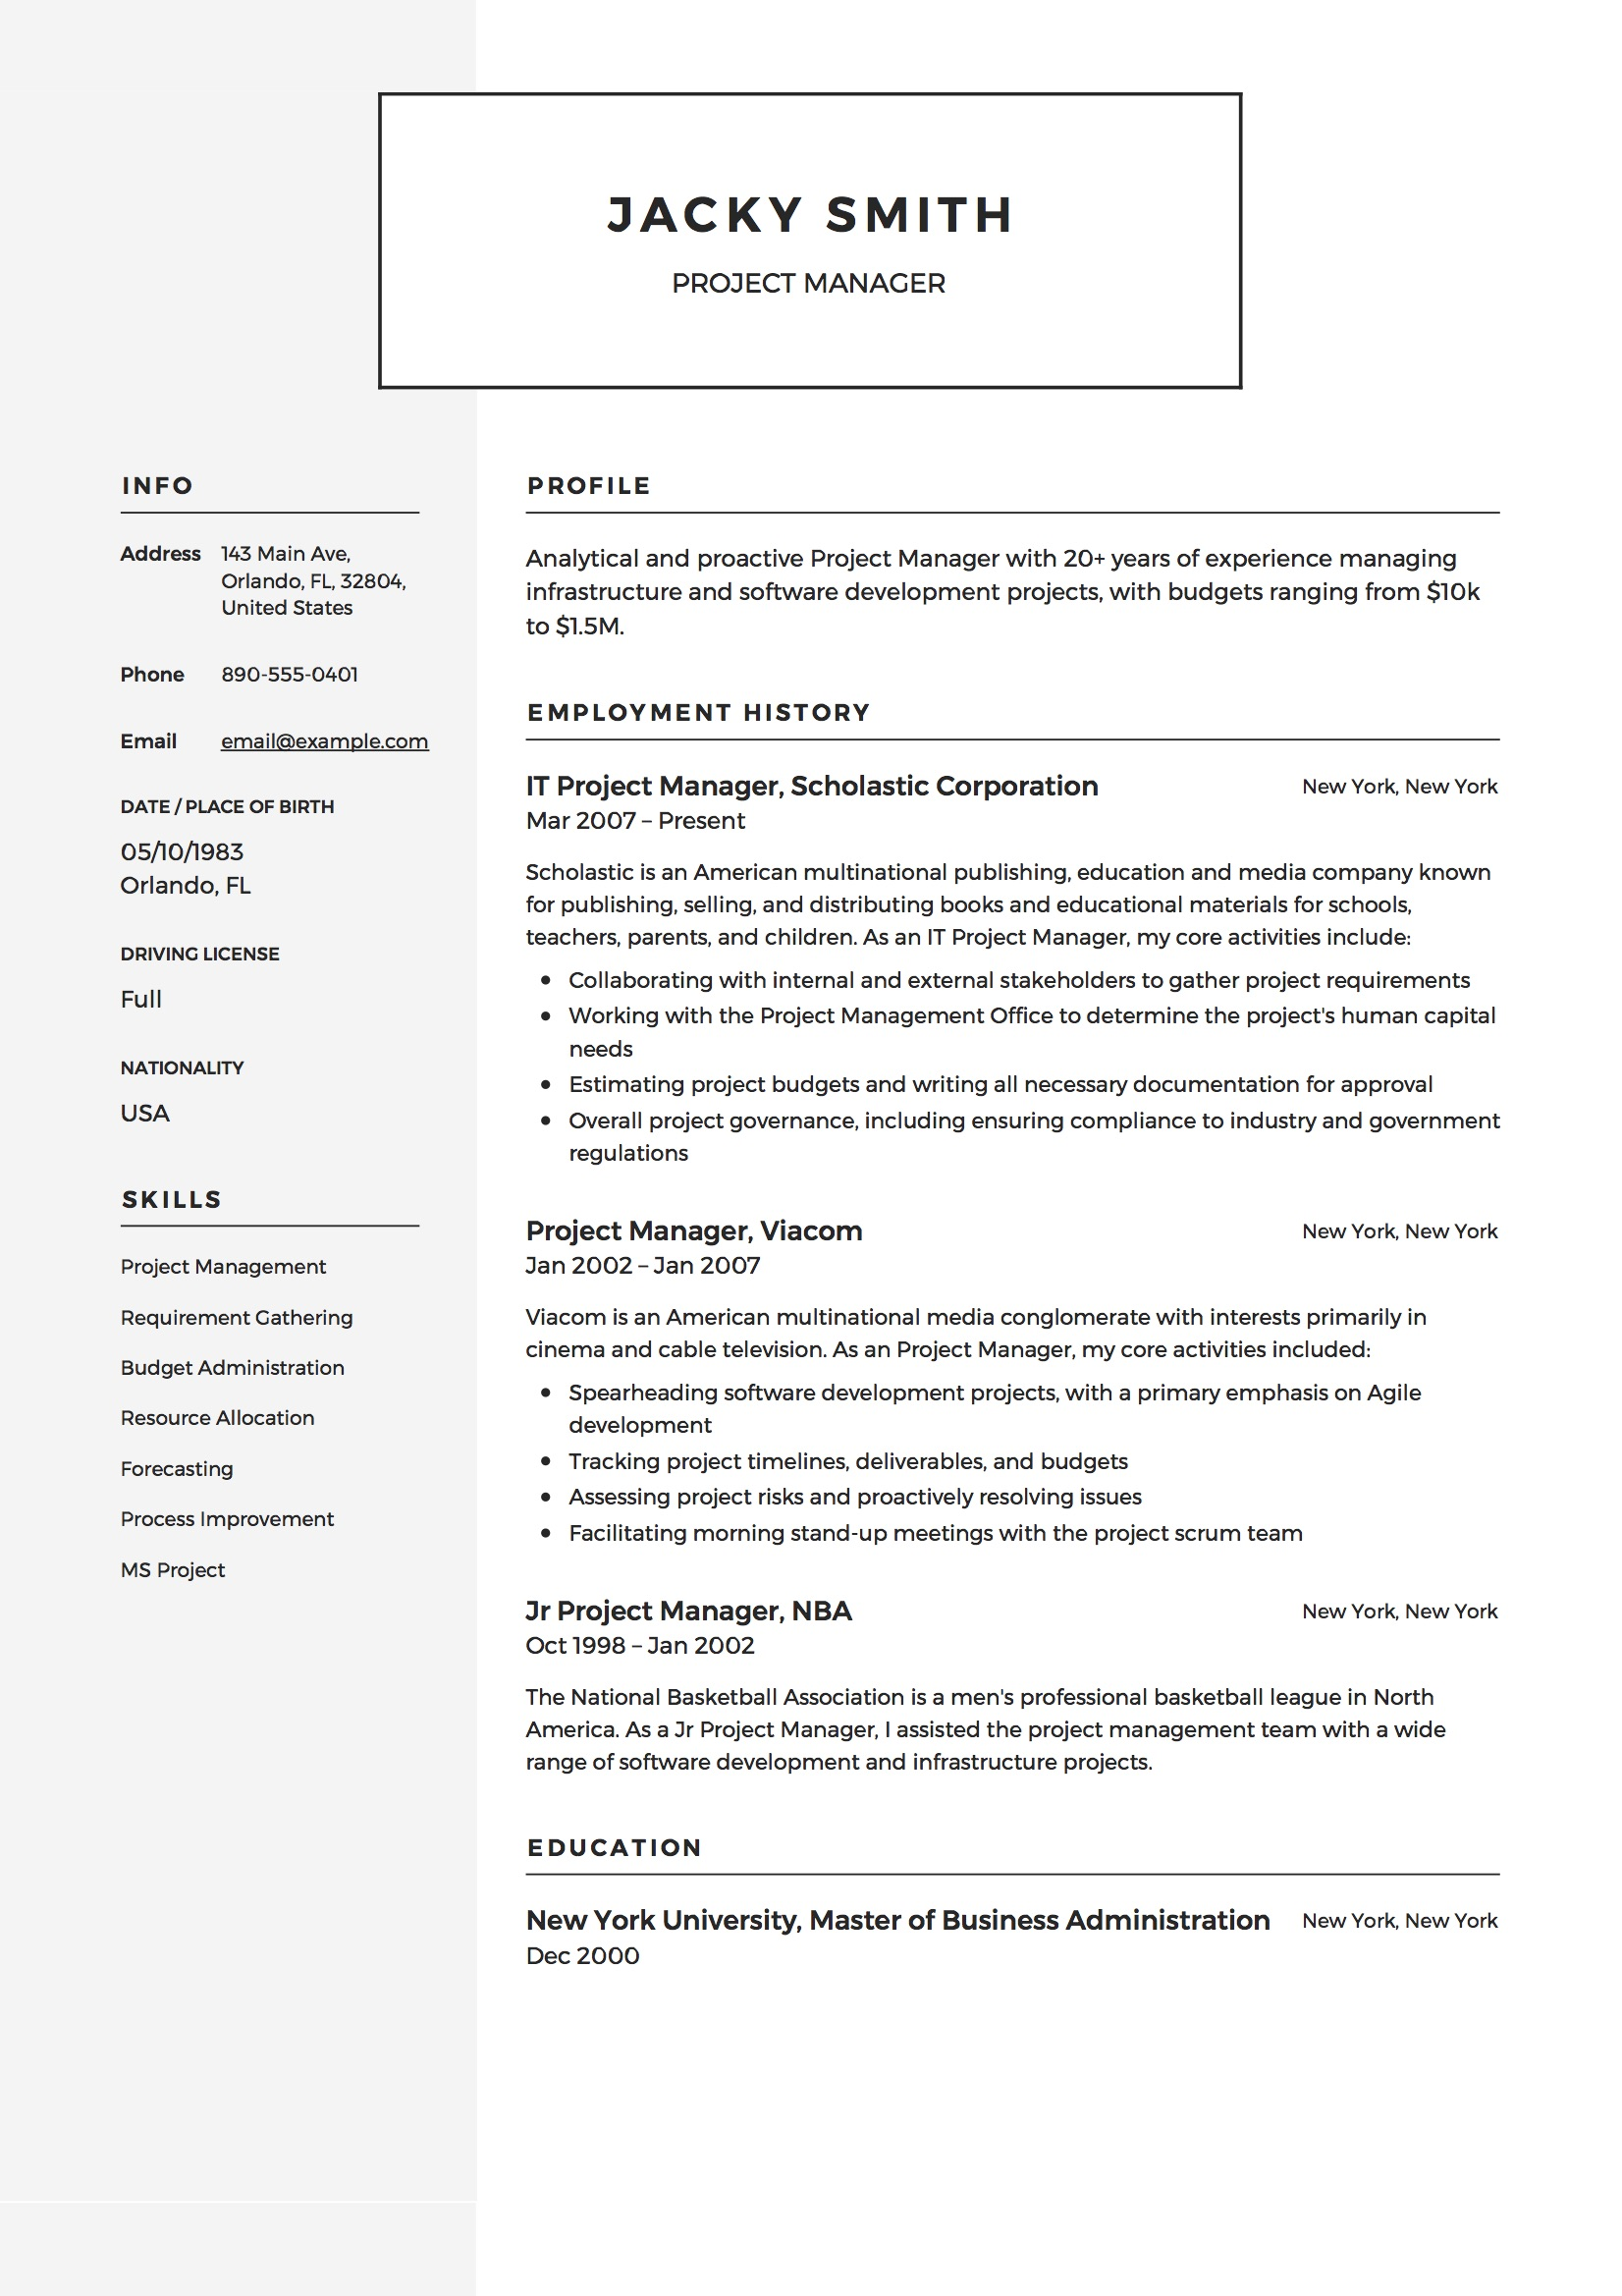 project manager resume examples full guide pdf word budget example medical billing Resume Project Manager Budget Resume